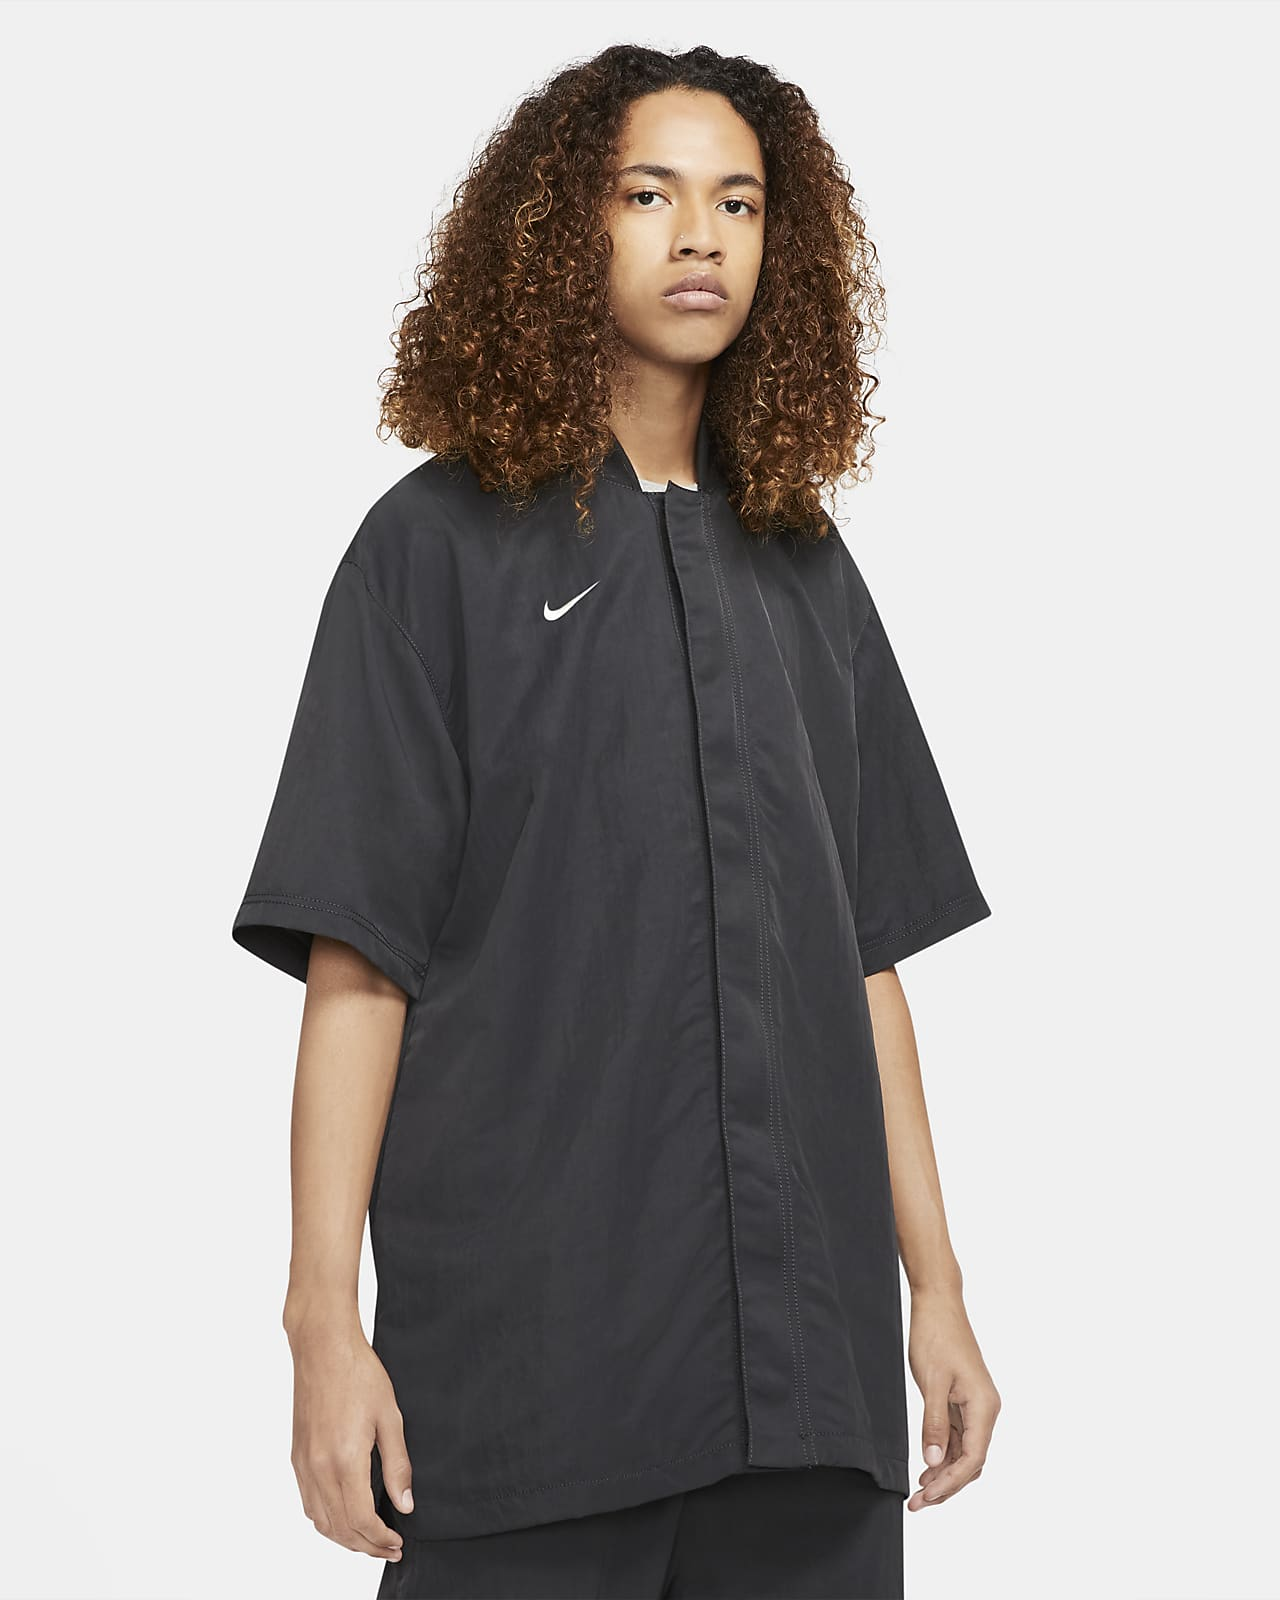 Nike x Fear of God Warm-Up Top